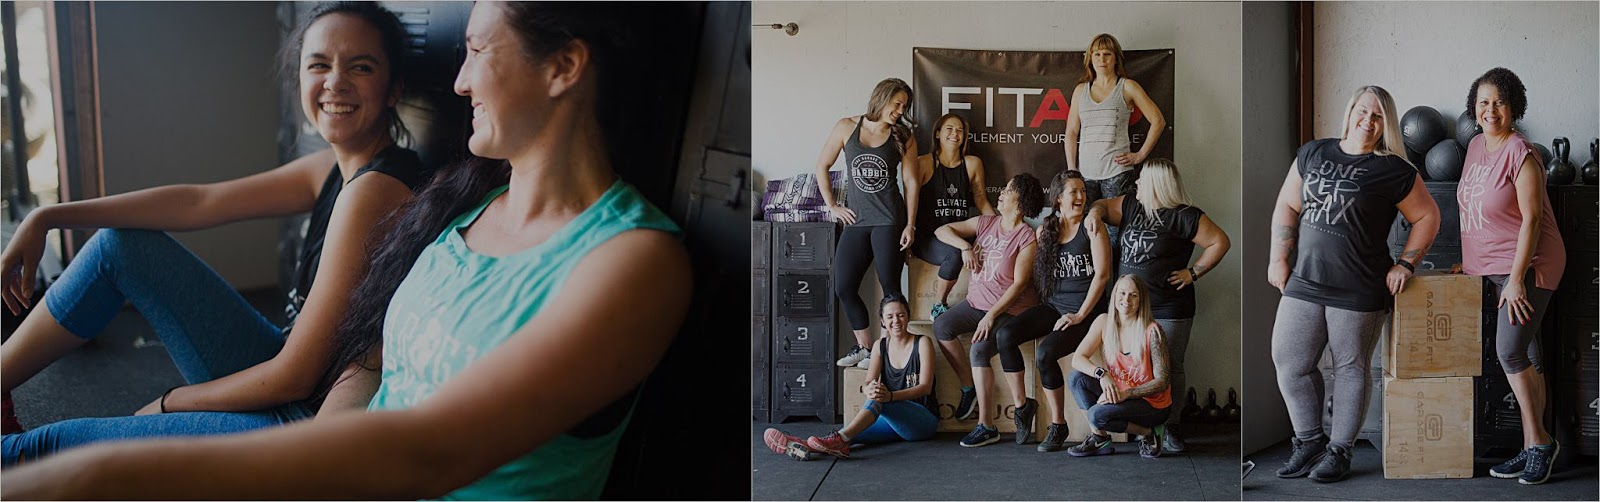 how-i-started-a-7k-month-women-s-gym-apparel-business-from-my-garage